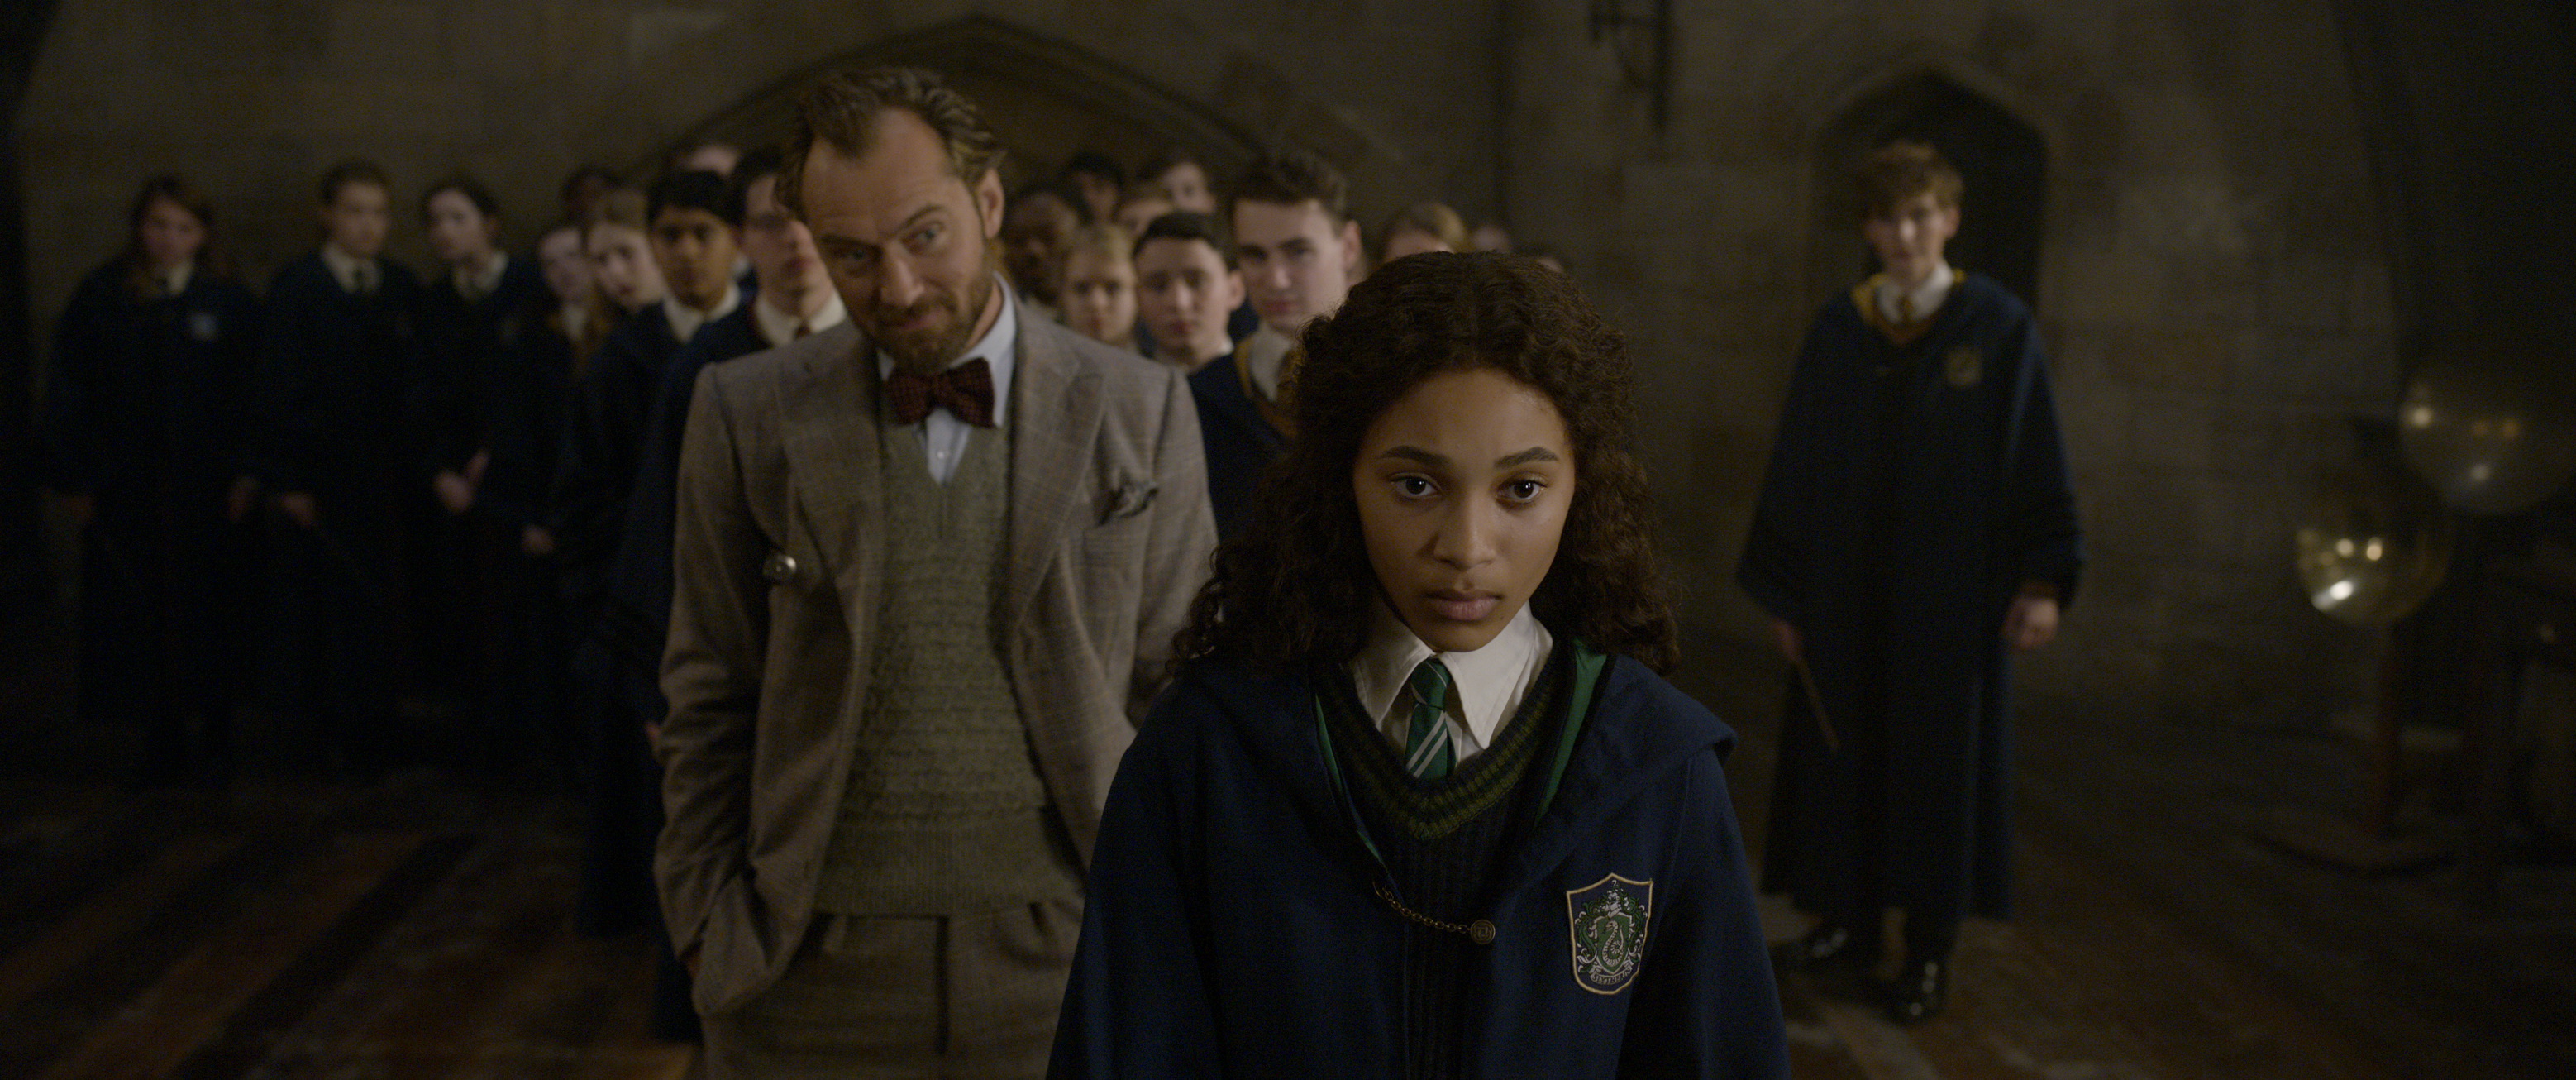 Albus Dumbledore, young Leta Lestrange, and young Newt Scamander